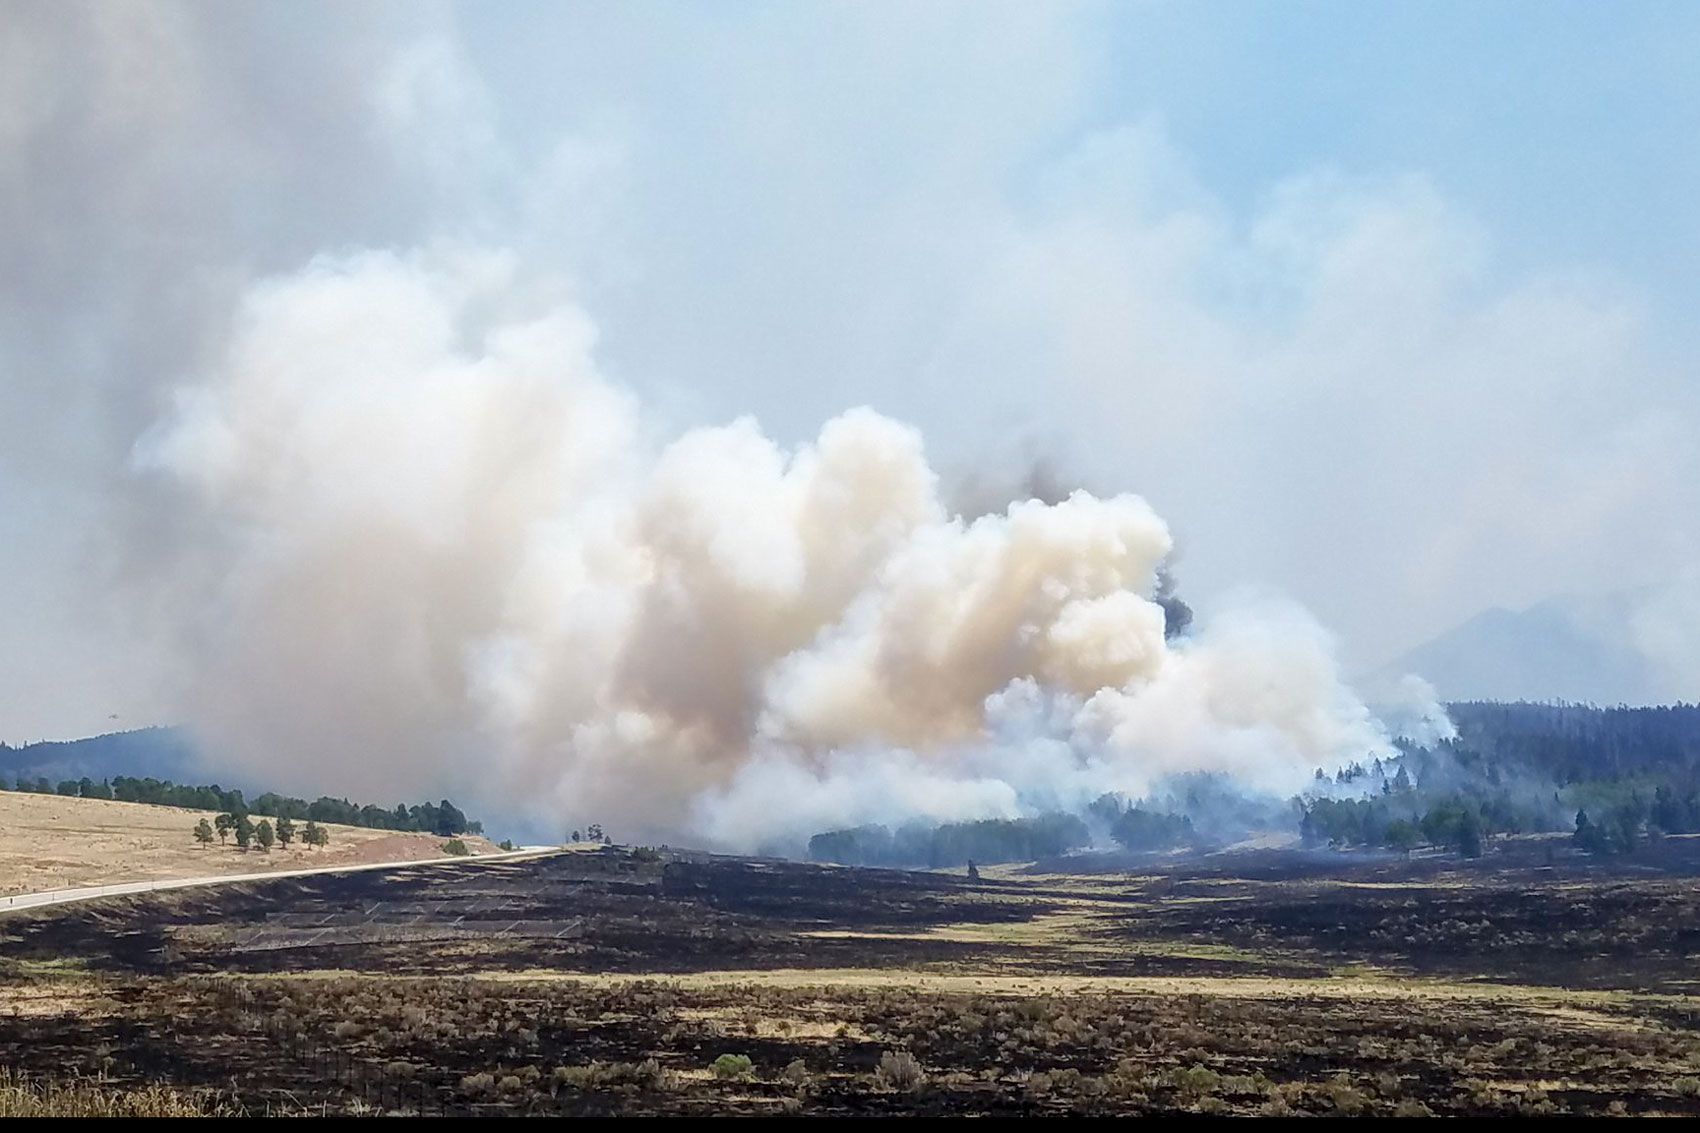 <p>The Spring Fire in Costilla County continues to burn. A crown fire on La Veta Pass, as seenSunday, July 1. The fire found an island of thick, unburned fuels.</p>